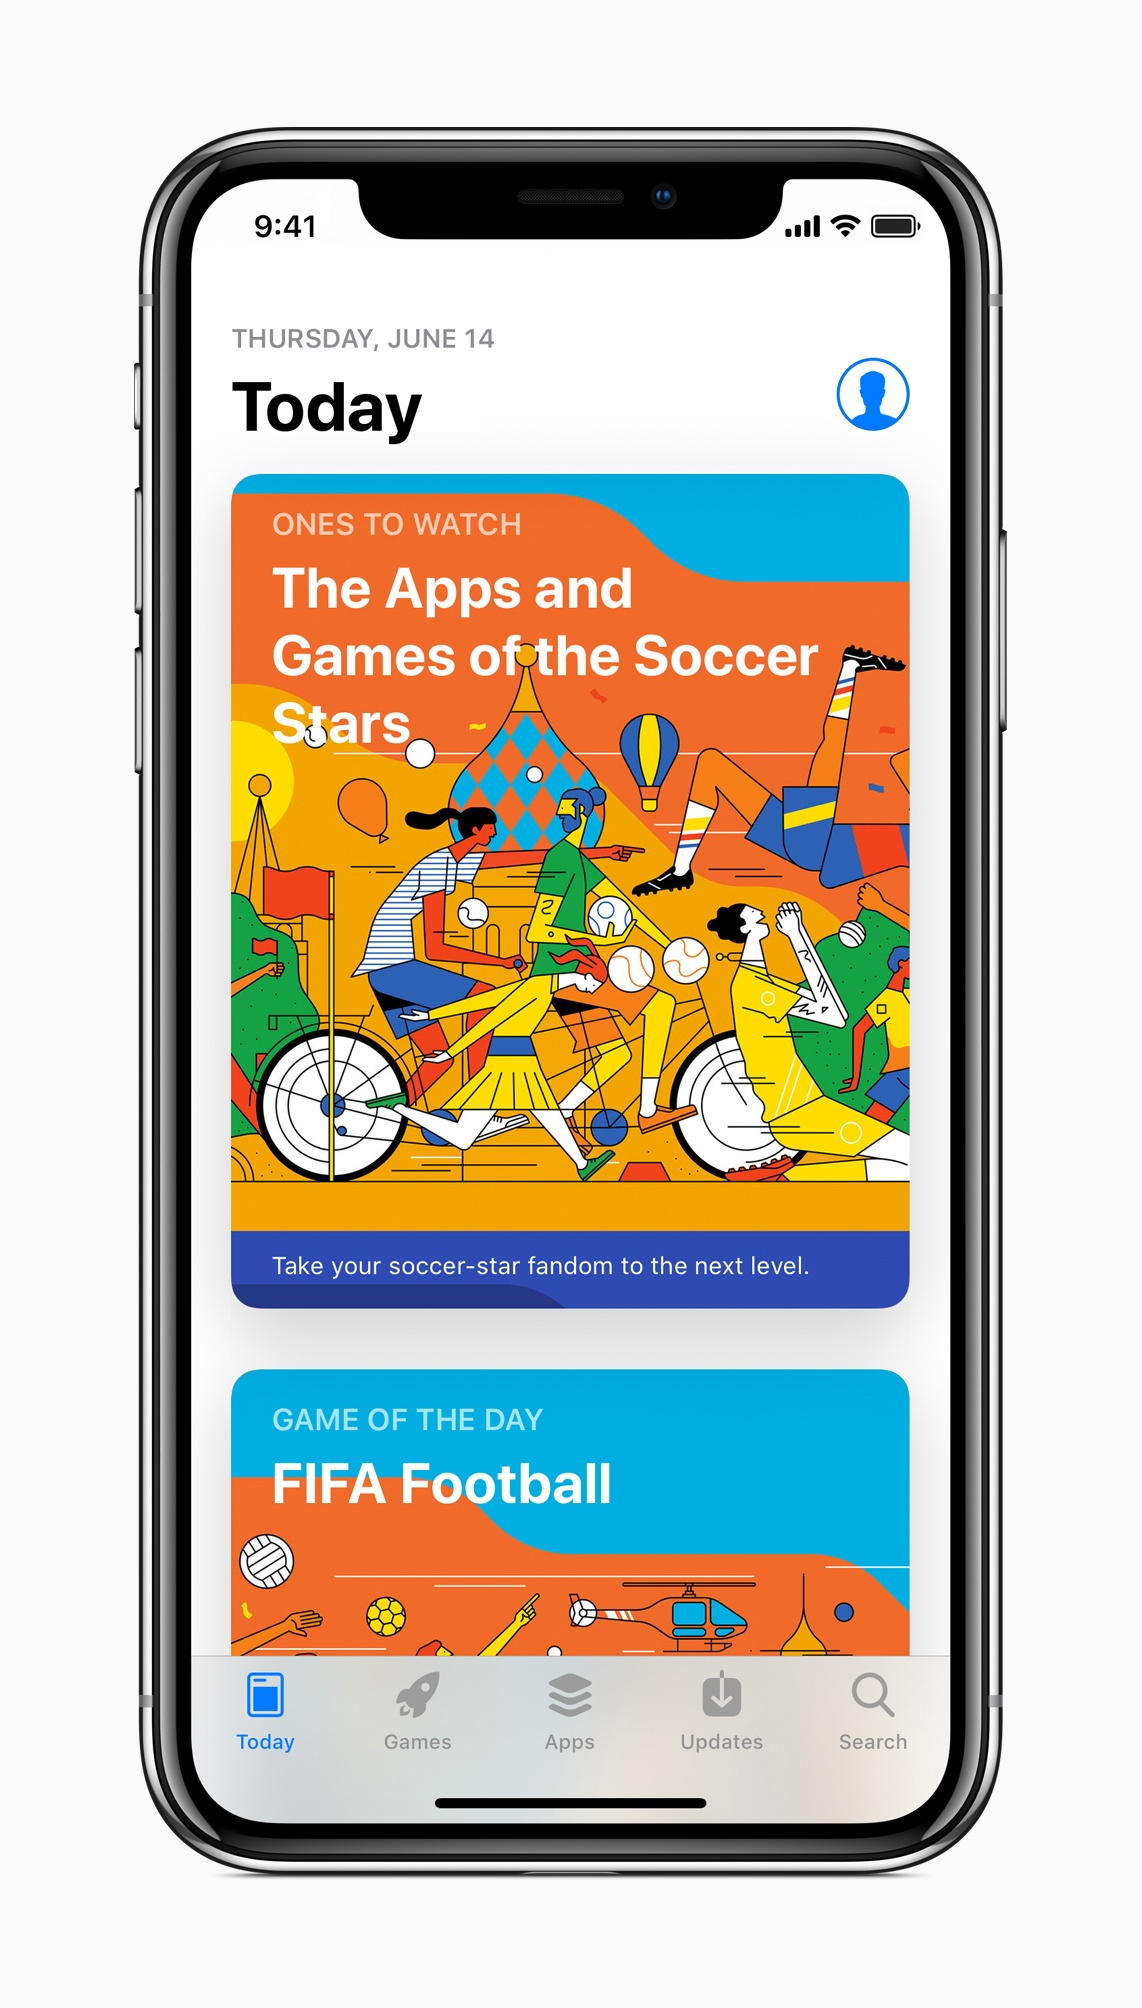 iPhone-X-World_Cup_Today_App_screen_06112018